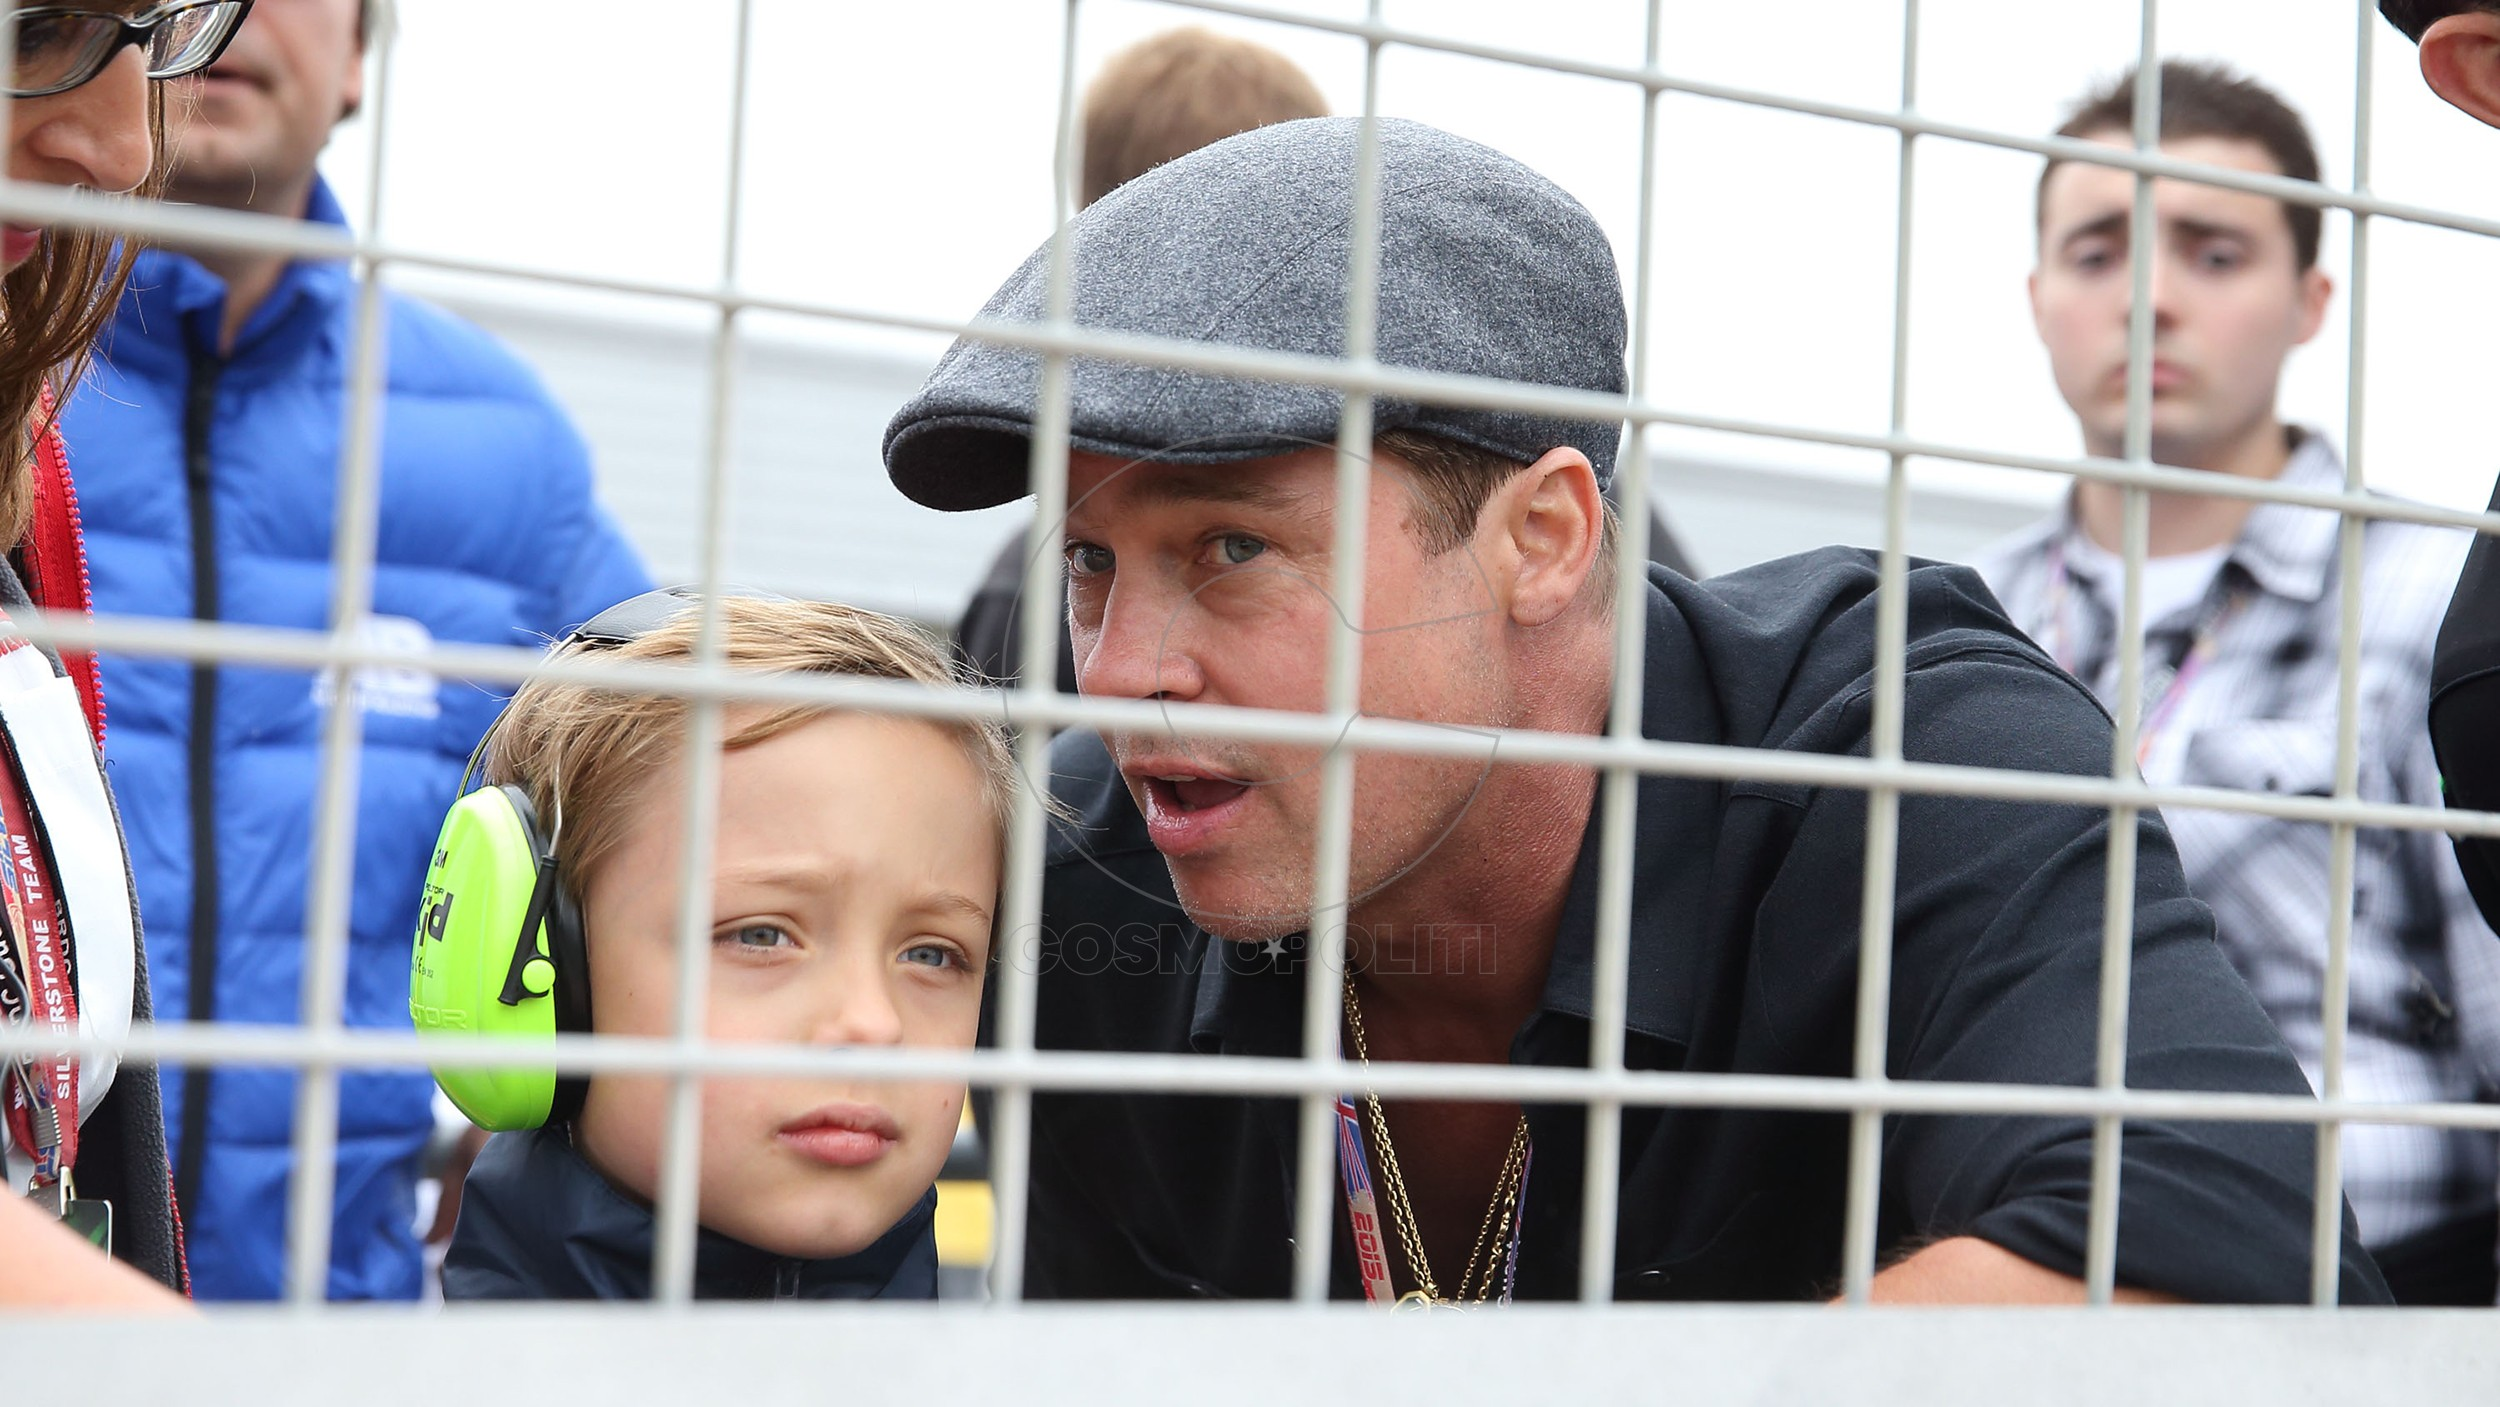 NORTHAMPTON, ENGLAND - AUGUST 30:  Brad Pitt and his son Knox-Jolie Pitt attend the MotoGP British Grand Prix race at Silverstone ahead of the release of documentary Hitting The Apex. Pitt is presenting the film, which is out in cinemas 2nd September and on DVD 7th September at Silverstone Circuit on August 30, 2015 in Northampton, England  (Photo by Mike Marsland/WireImage)